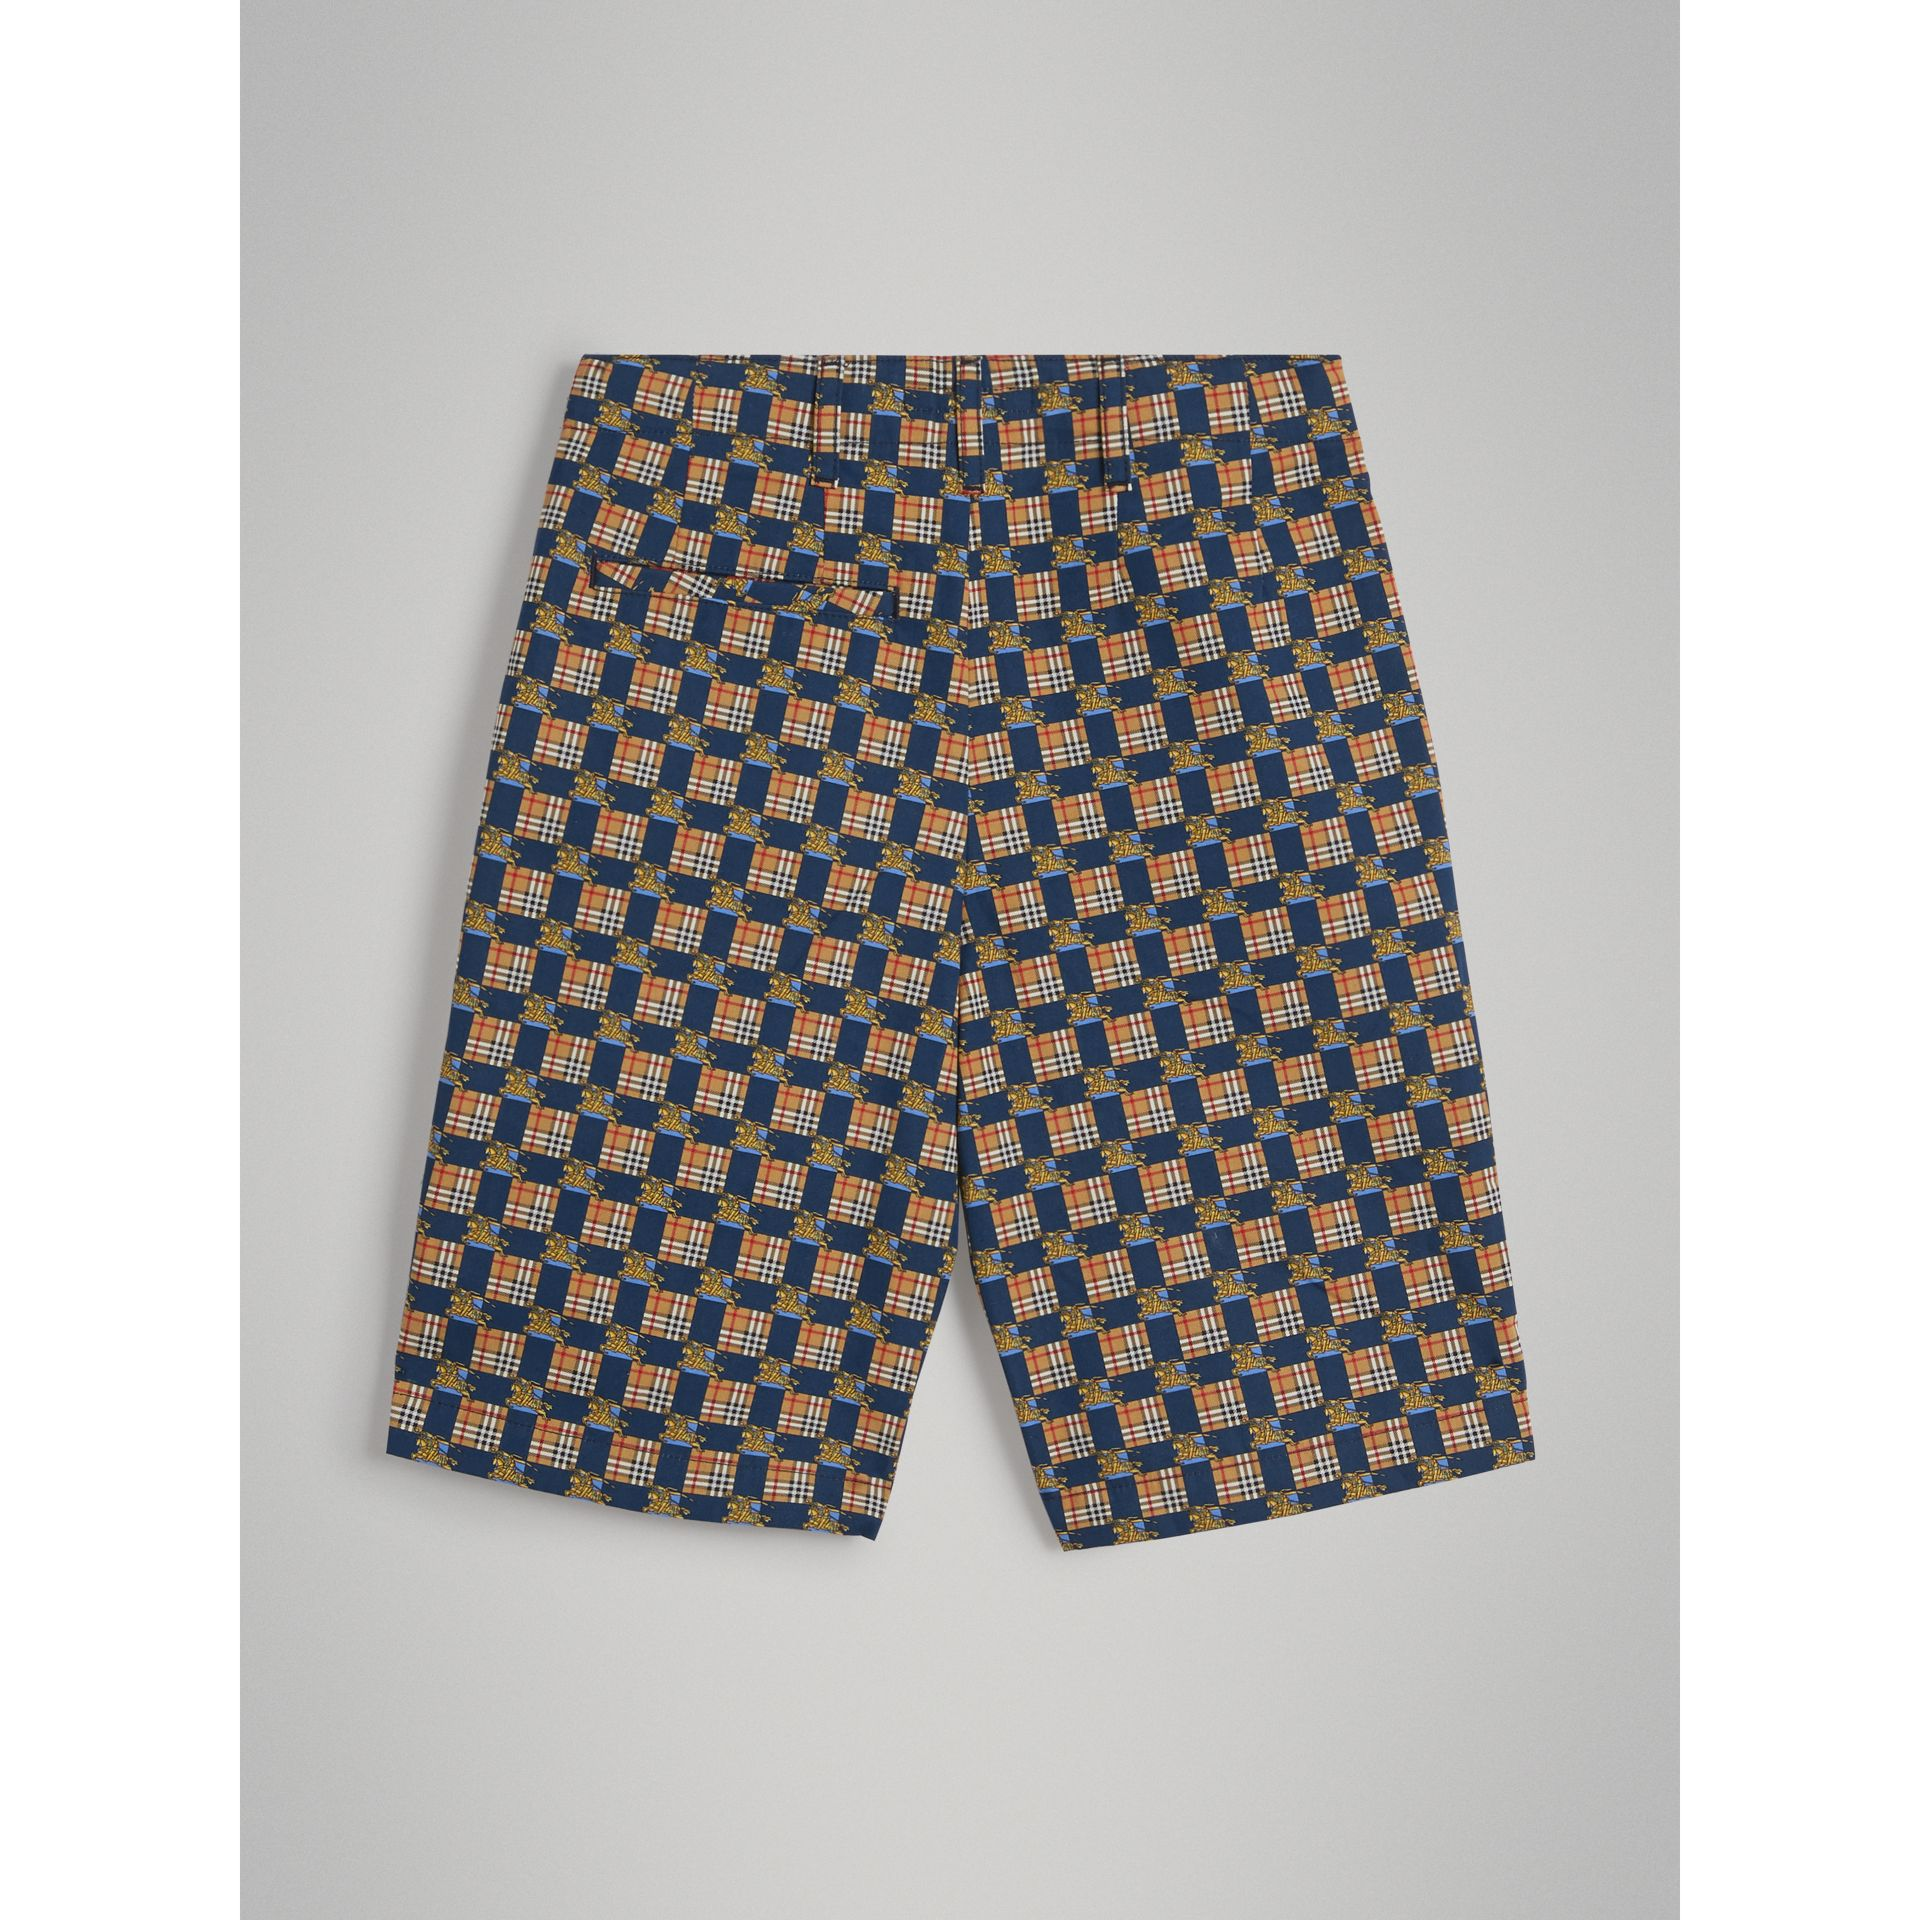 Tiled Archive Print Cotton Shorts in Navy | Burberry - gallery image 3